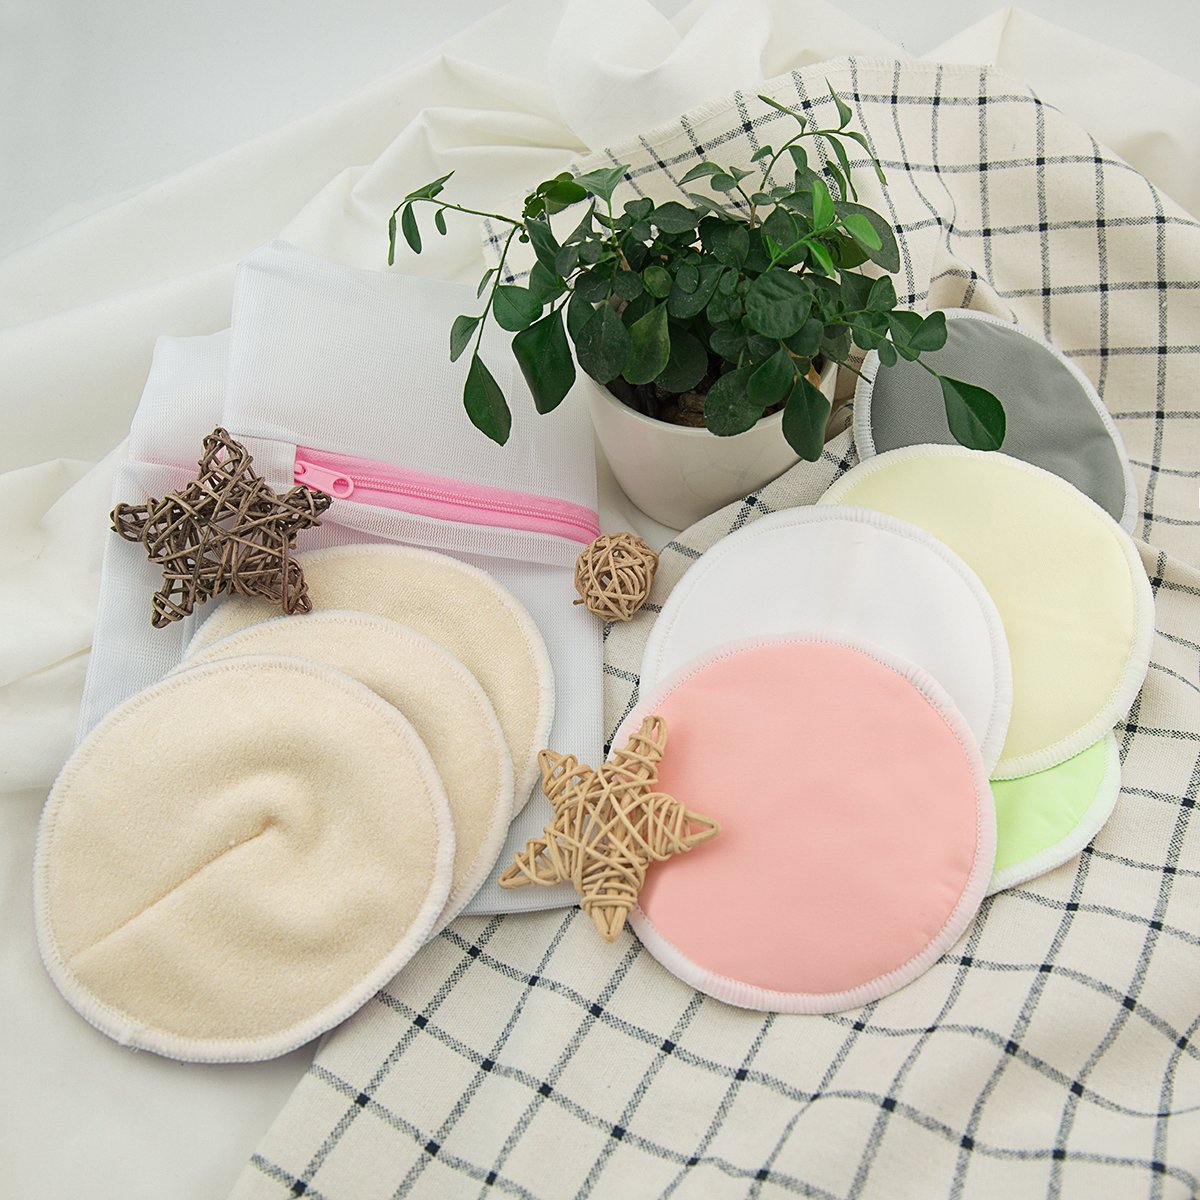 ALVABABY Bamboo Nursing Pads, 16 Pcs Breastfeeding Pads, Reusable & Washable & Soft & Absorbent & Leak-Proof, with One Cloth Wet Bag and One Laundry Bag(16RDB) by ALVA (Image #5)